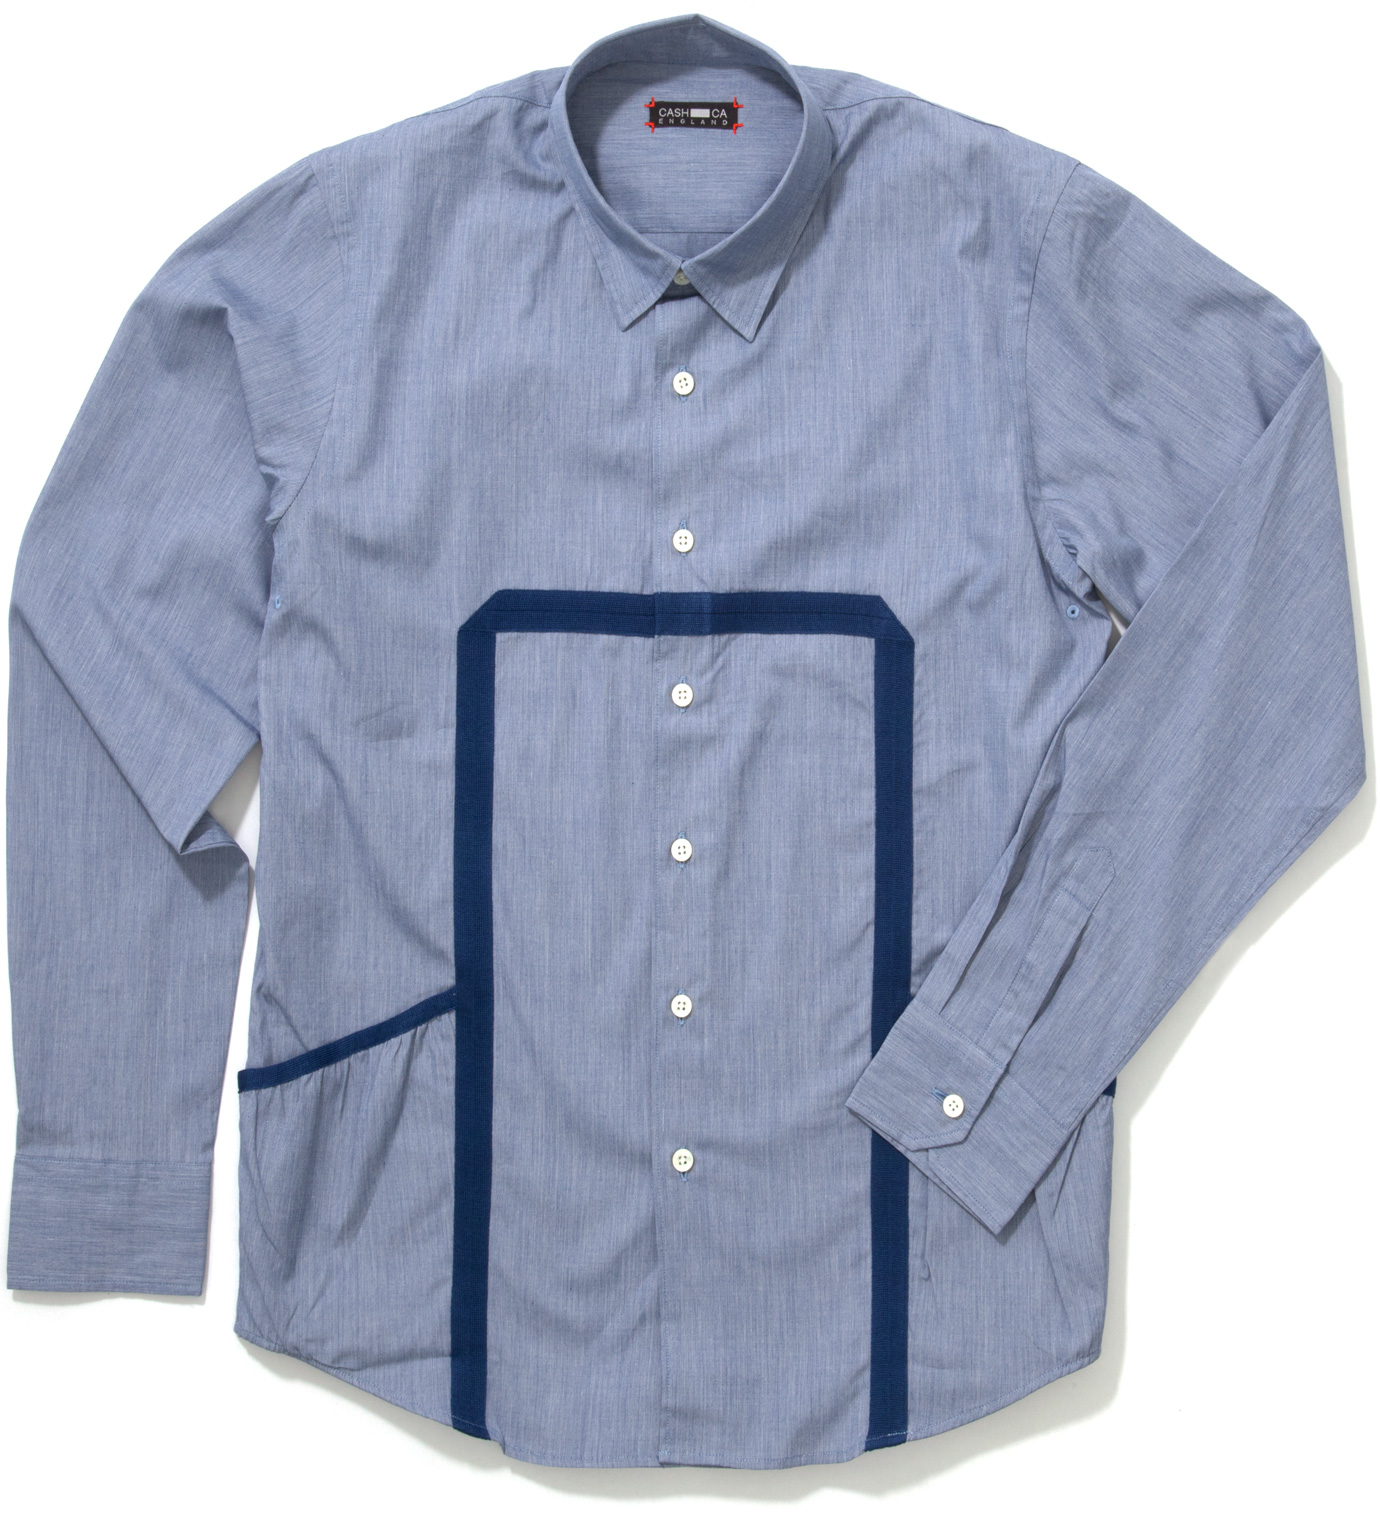 CASH CA Blue End on End Knit Tape Shirt